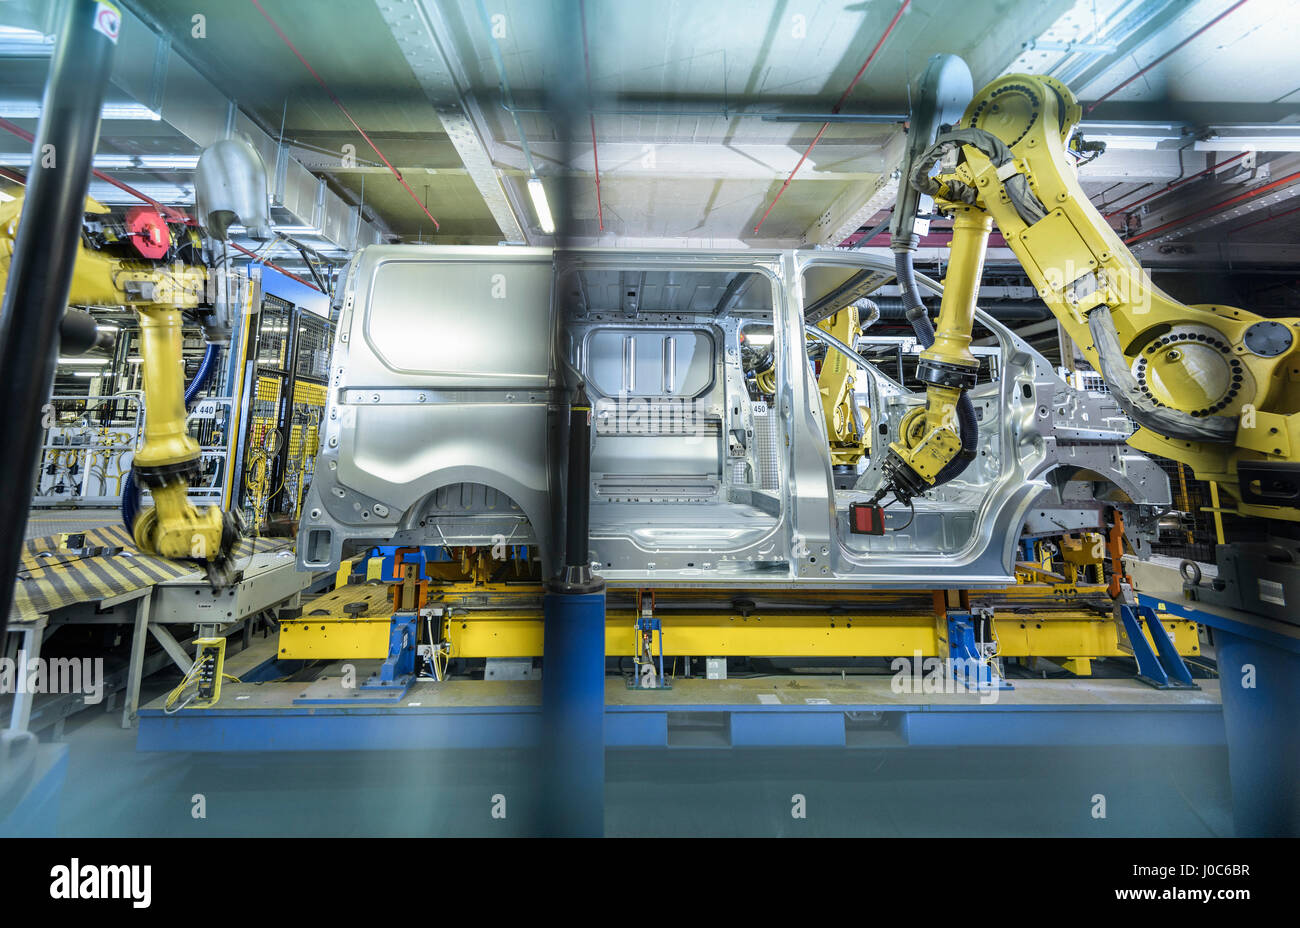 Vehicle and robots on production line in car factory - Stock Image